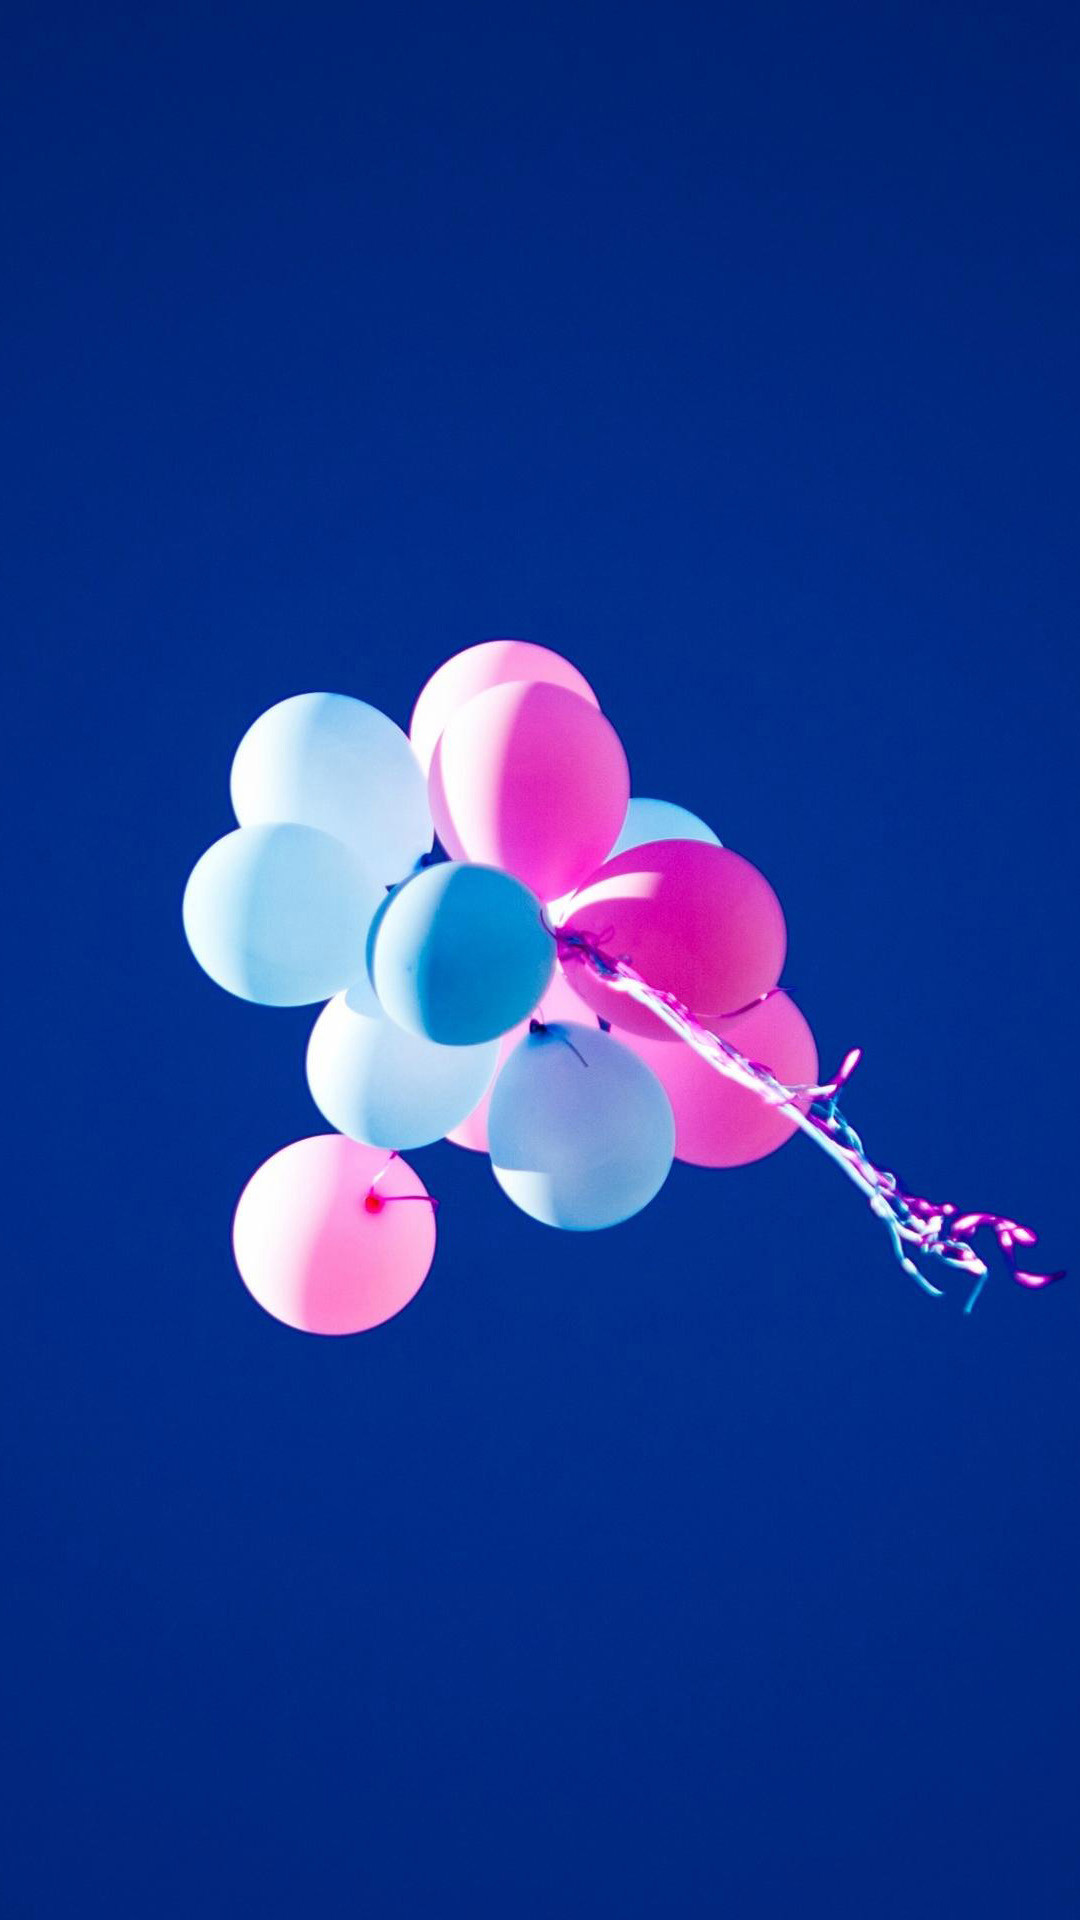 HD Balloons Blue Sky Pink Android Wallpaper …